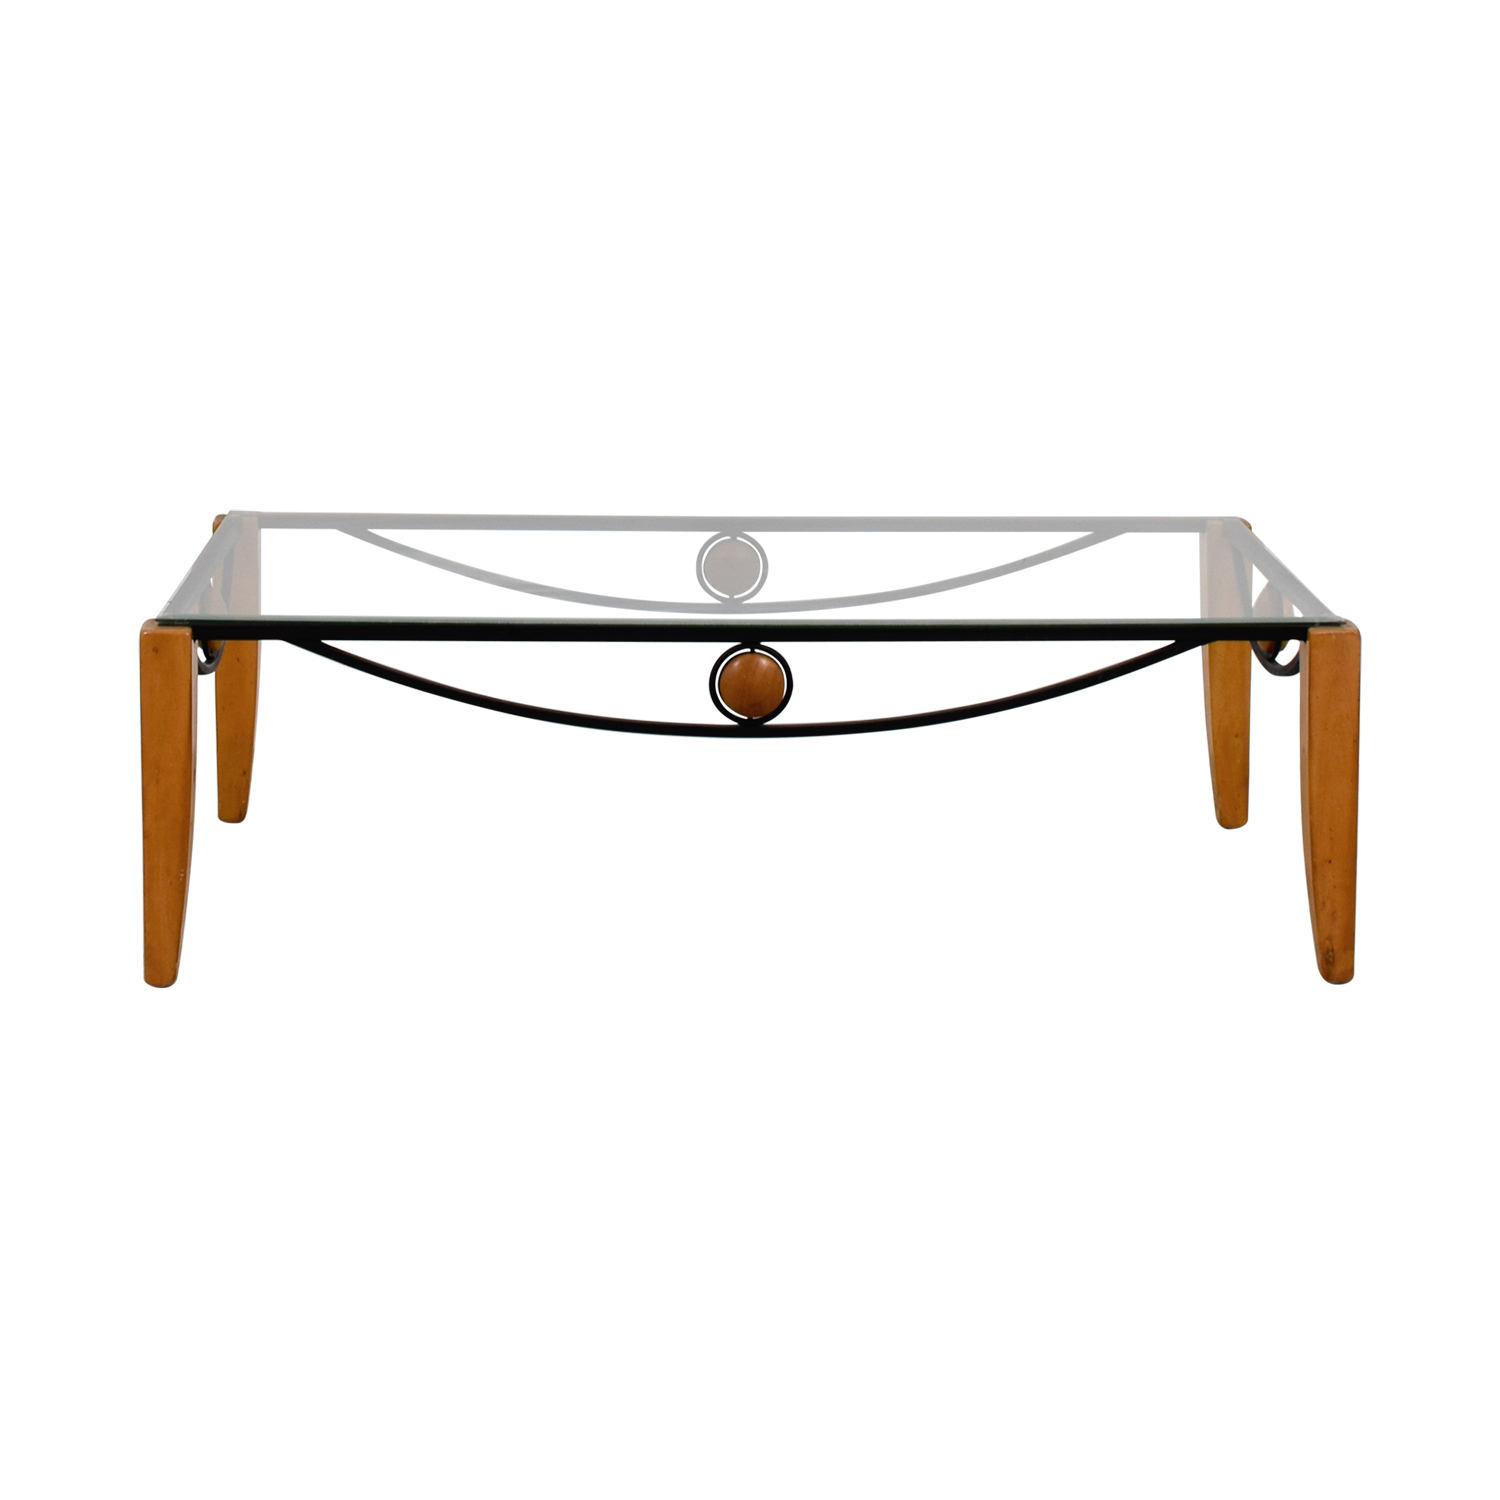 57 off metal and wood coffee table tables shop metal and wood coffee table online geotapseo Image collections